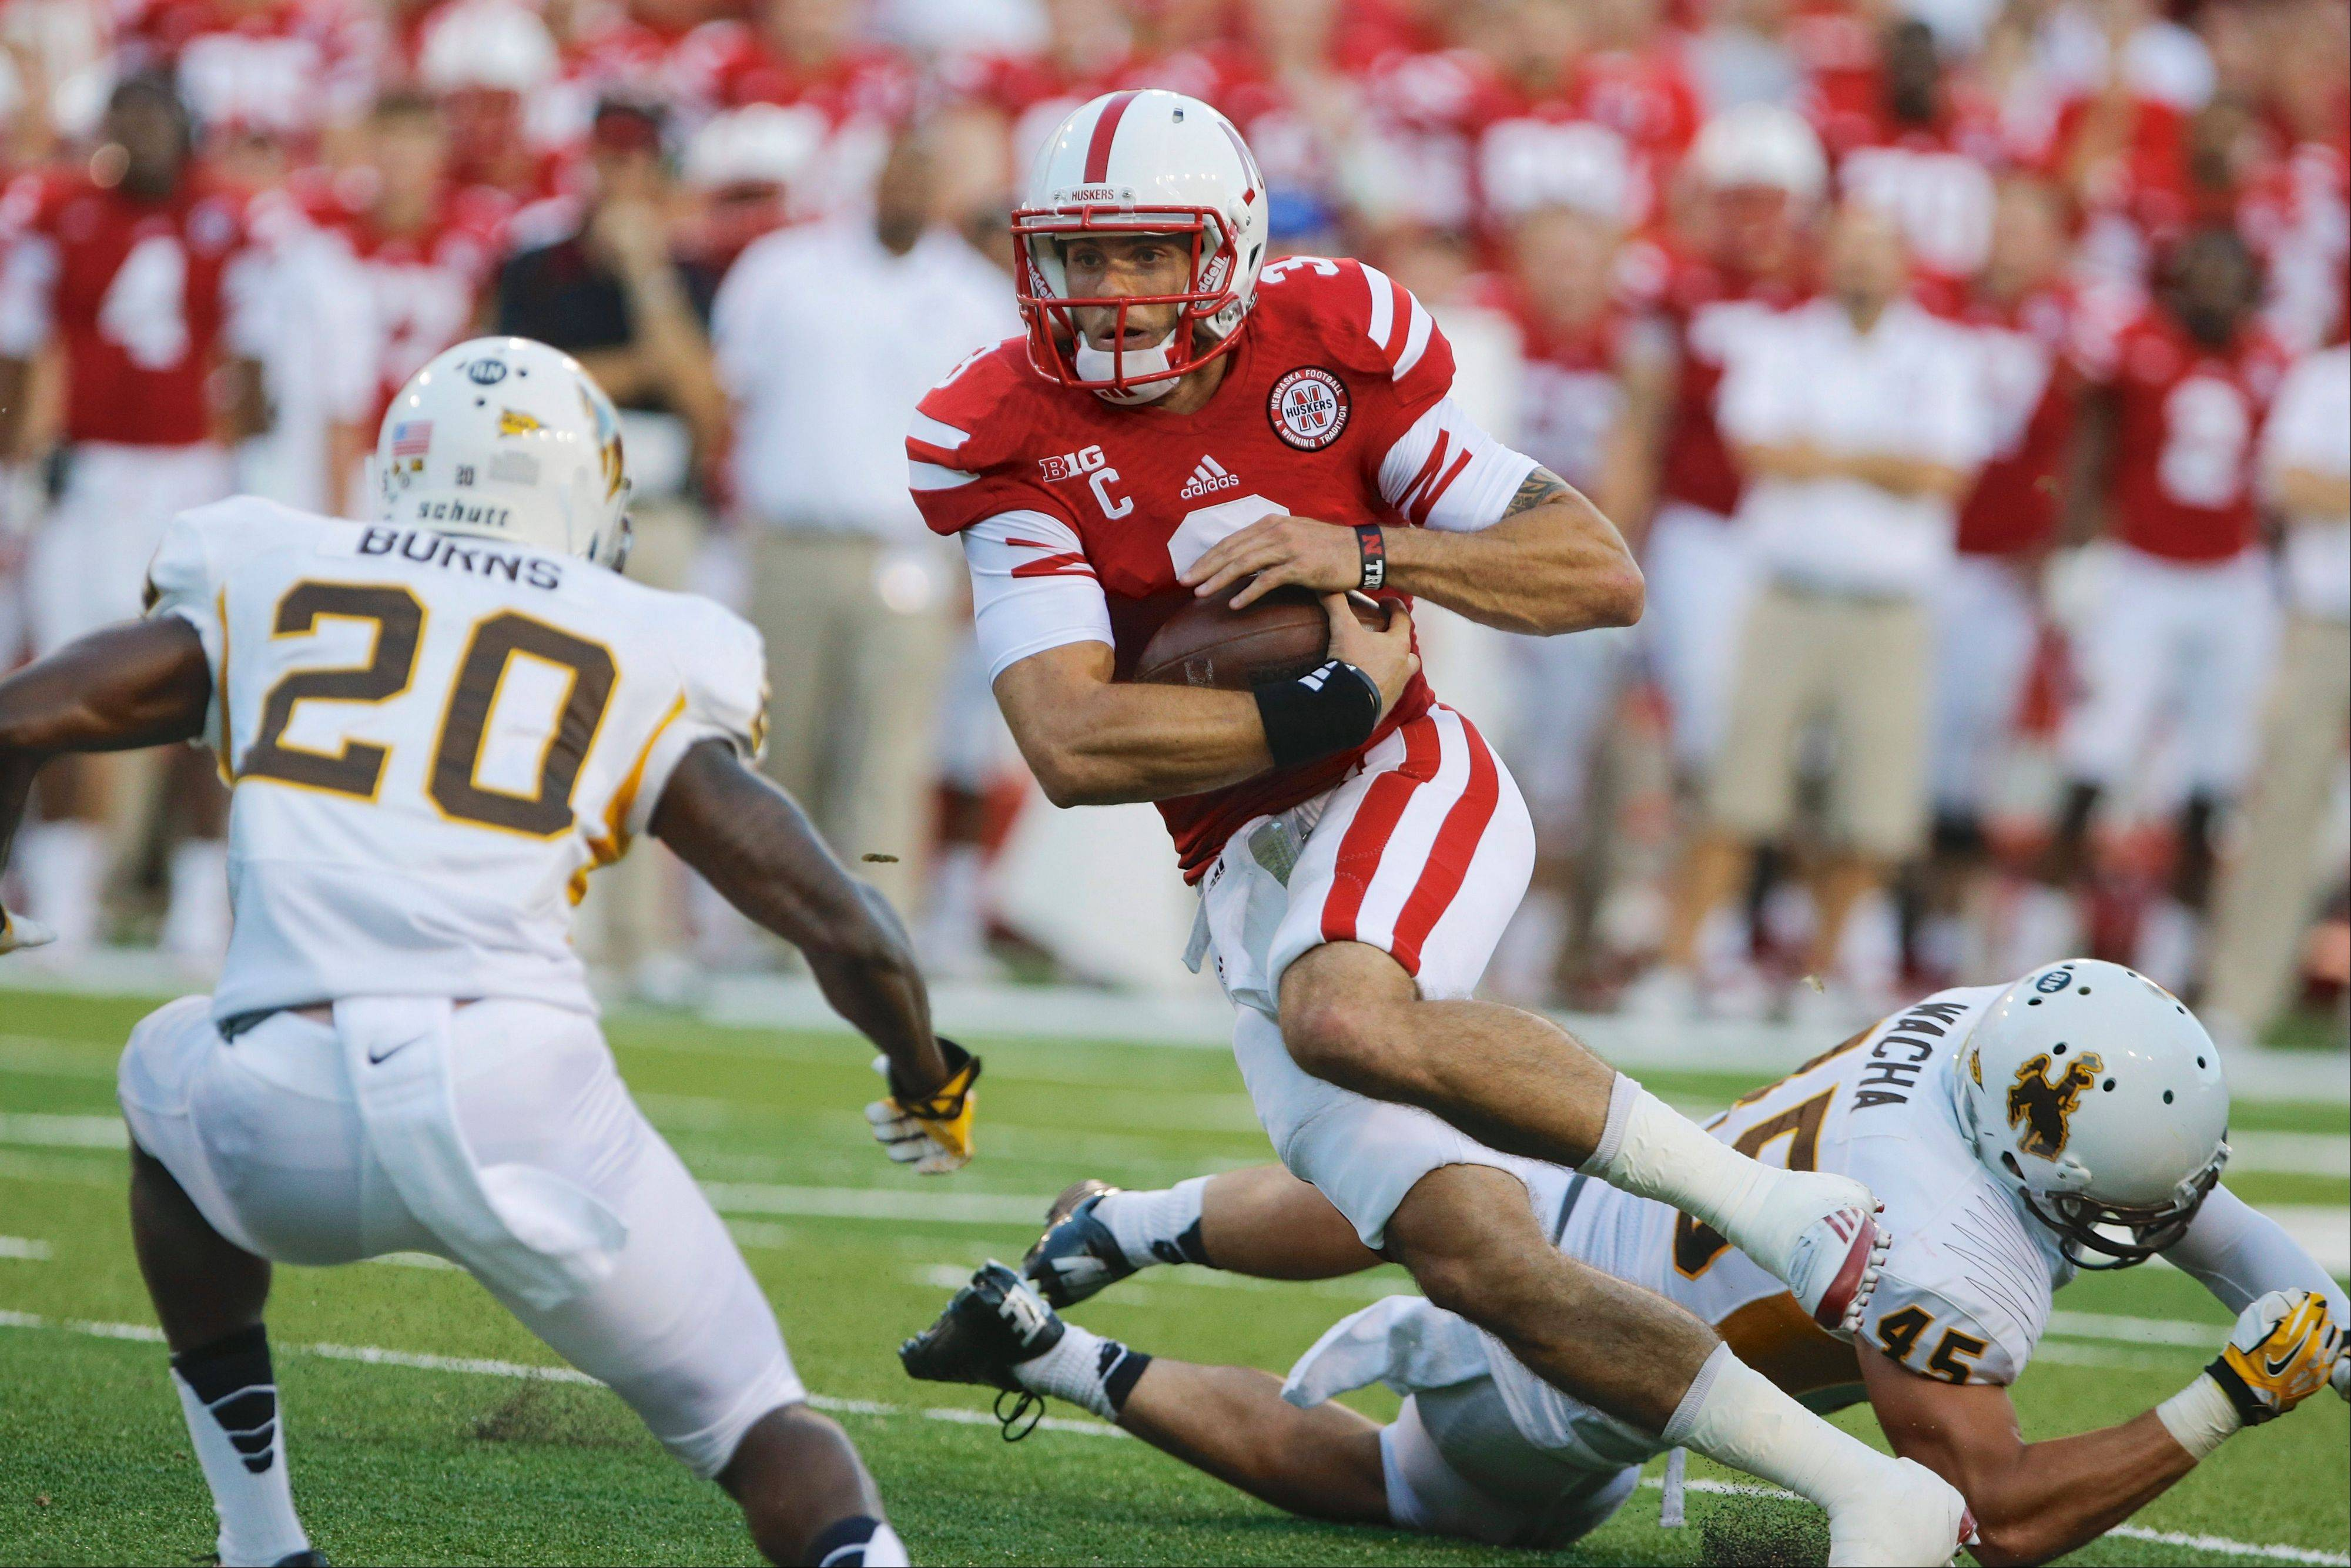 Nebraska quarterback Taylor Martinez carries the ball past Wyoming linebacker Lucas Wacha, right, and cornerback Blair Burns in the first half of Saturday's game in Lincoln.